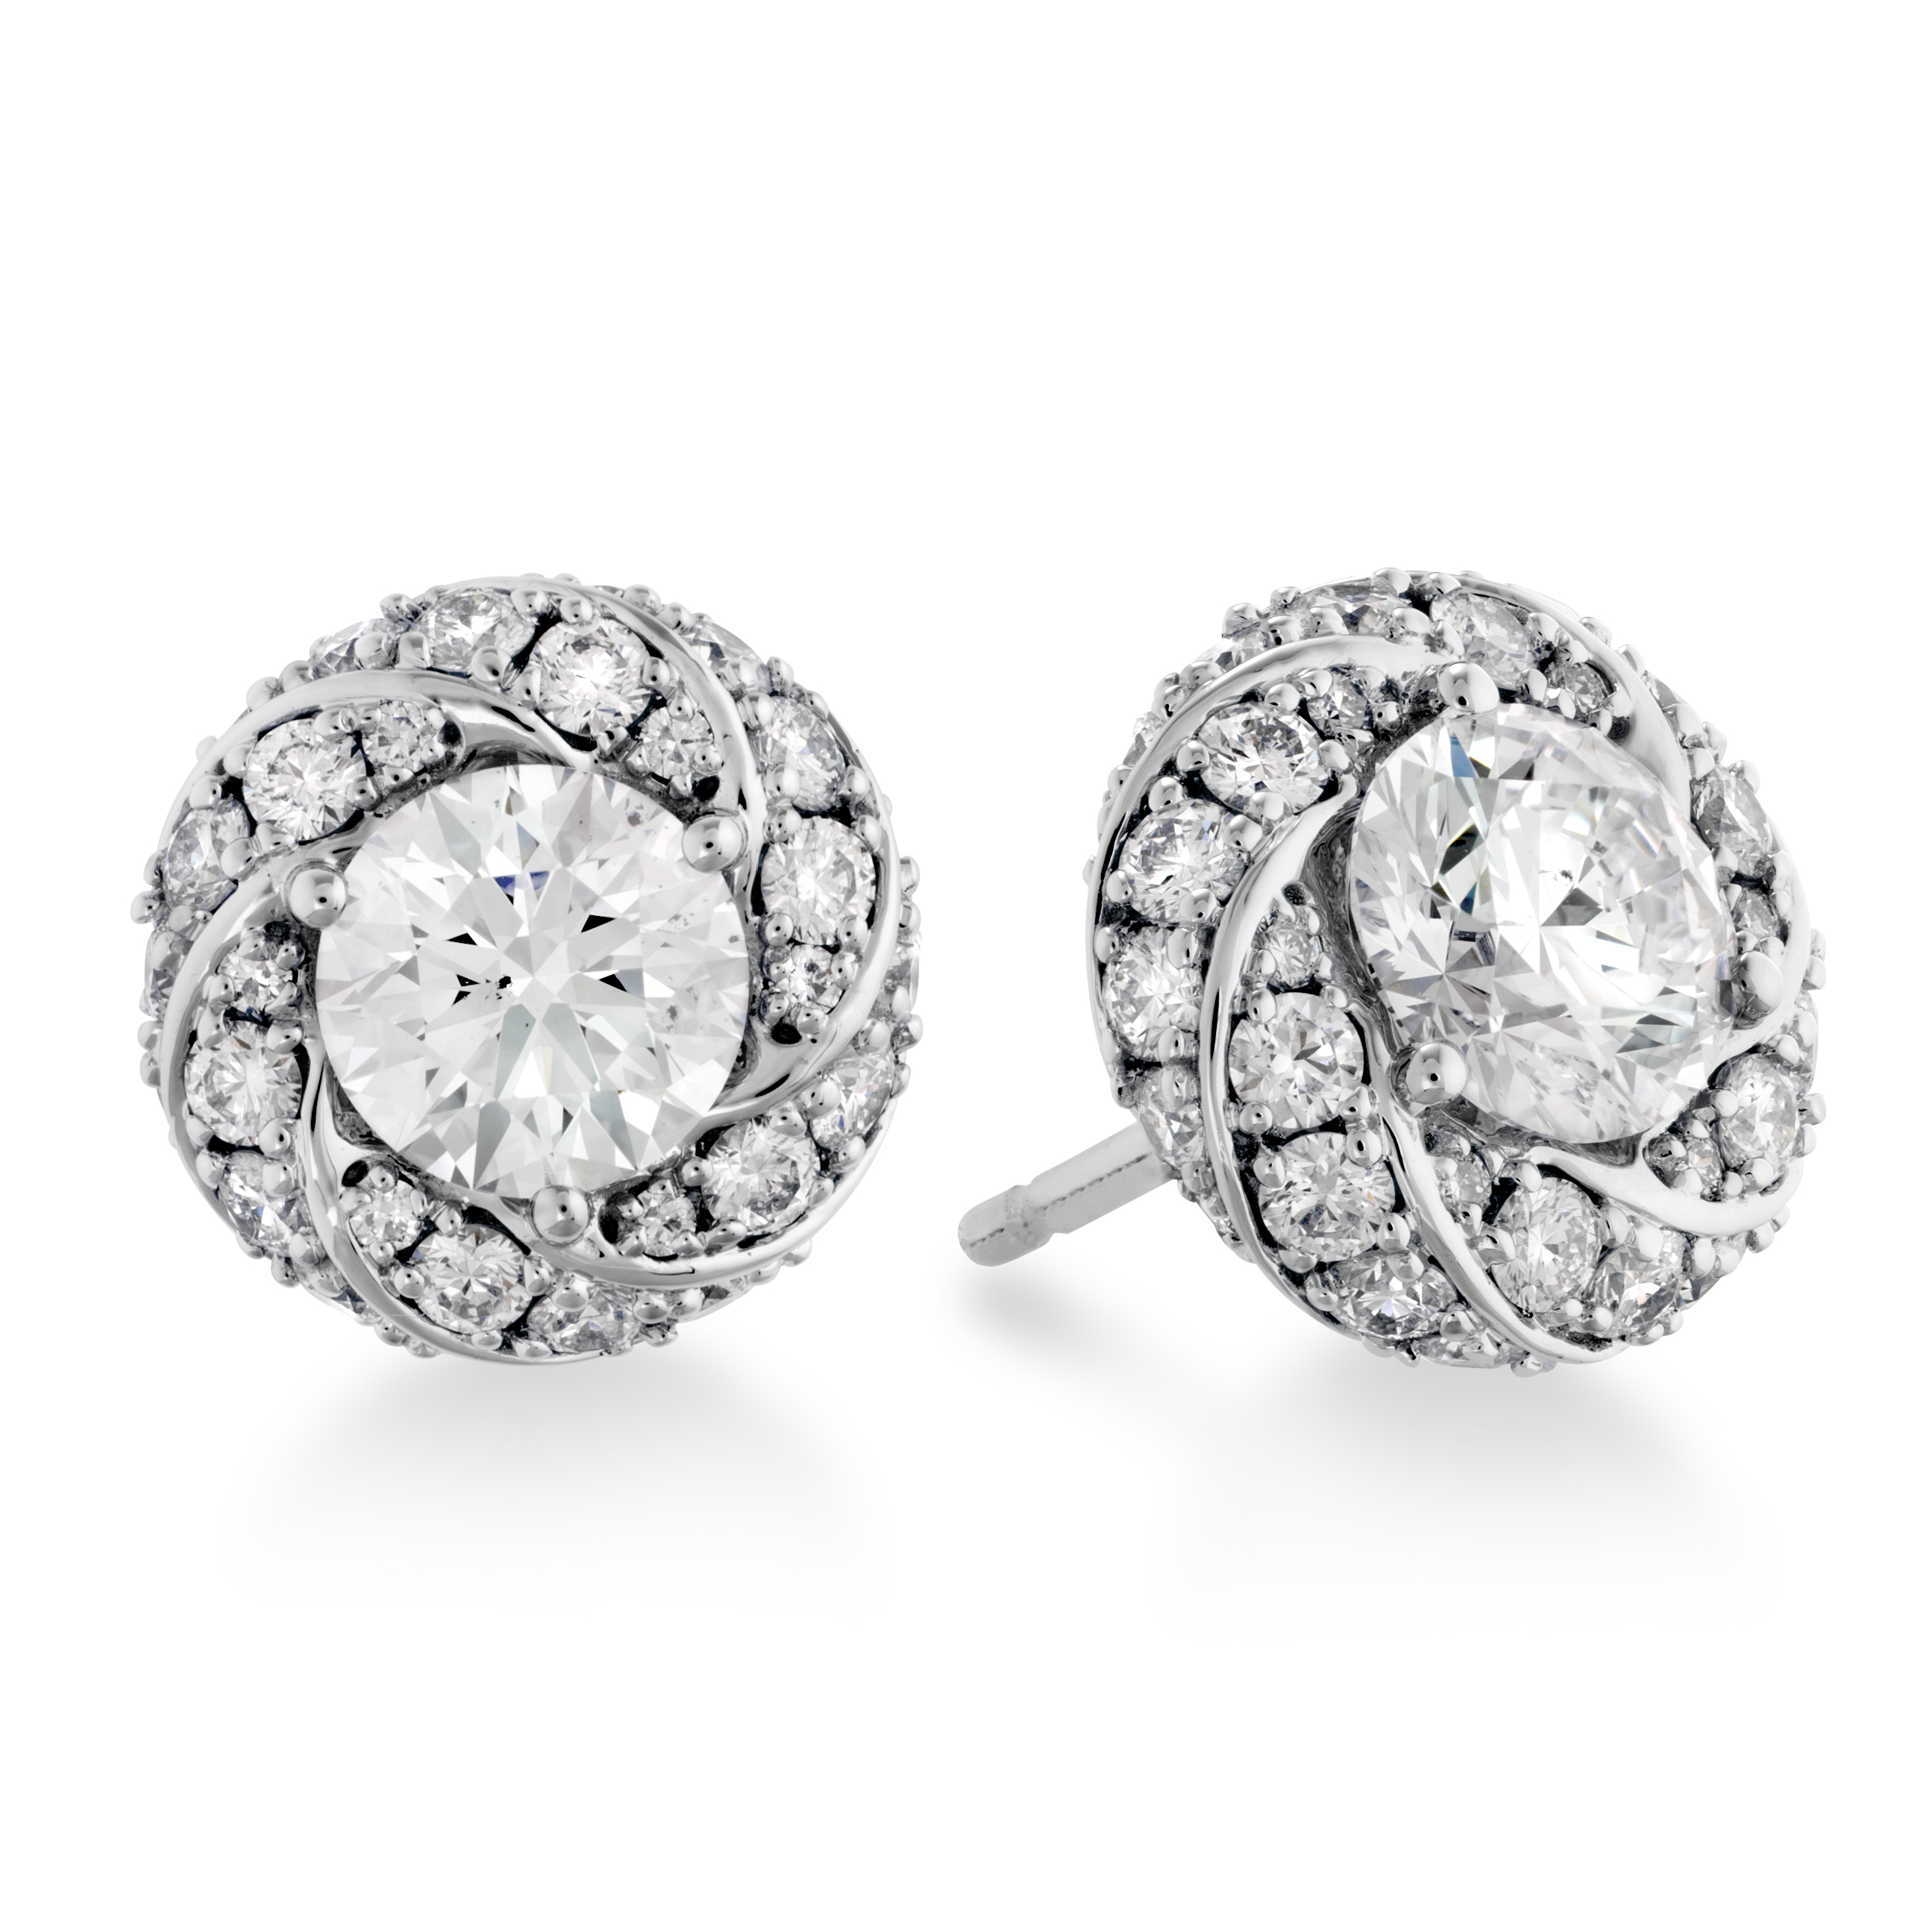 diamond product earrings dew one overstock today stud charles watches jewelry gold colorless colvard free forever moissanite shipping